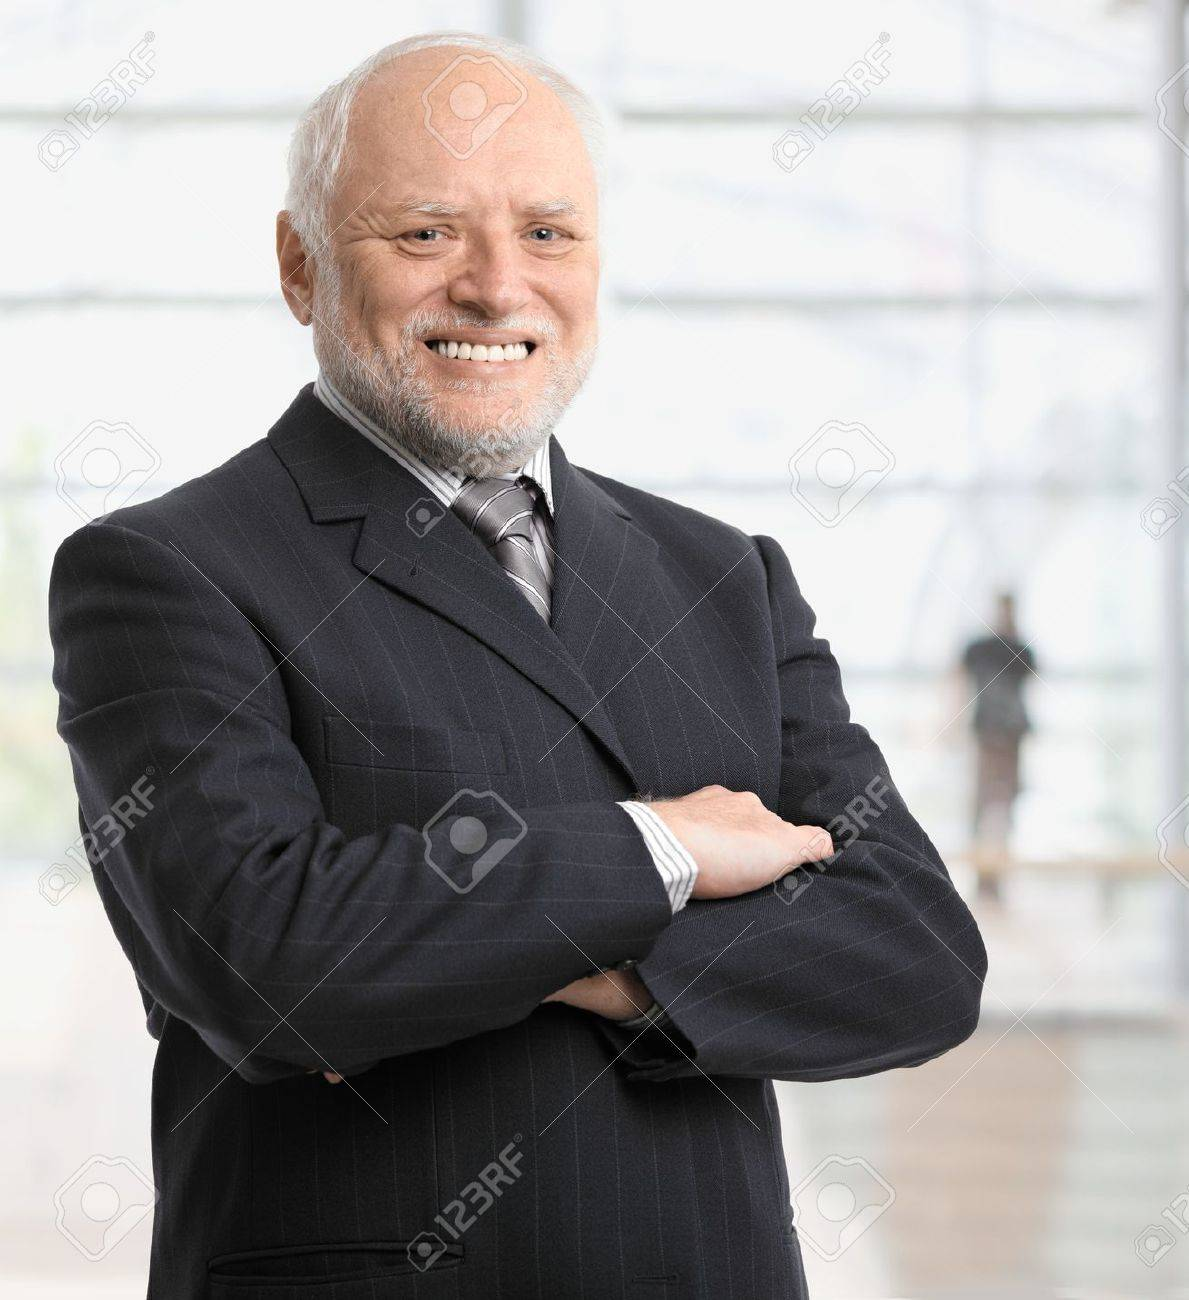 Portrait of successful senior businessman standing in office lobby, smiling. Stock Photo - 8746962